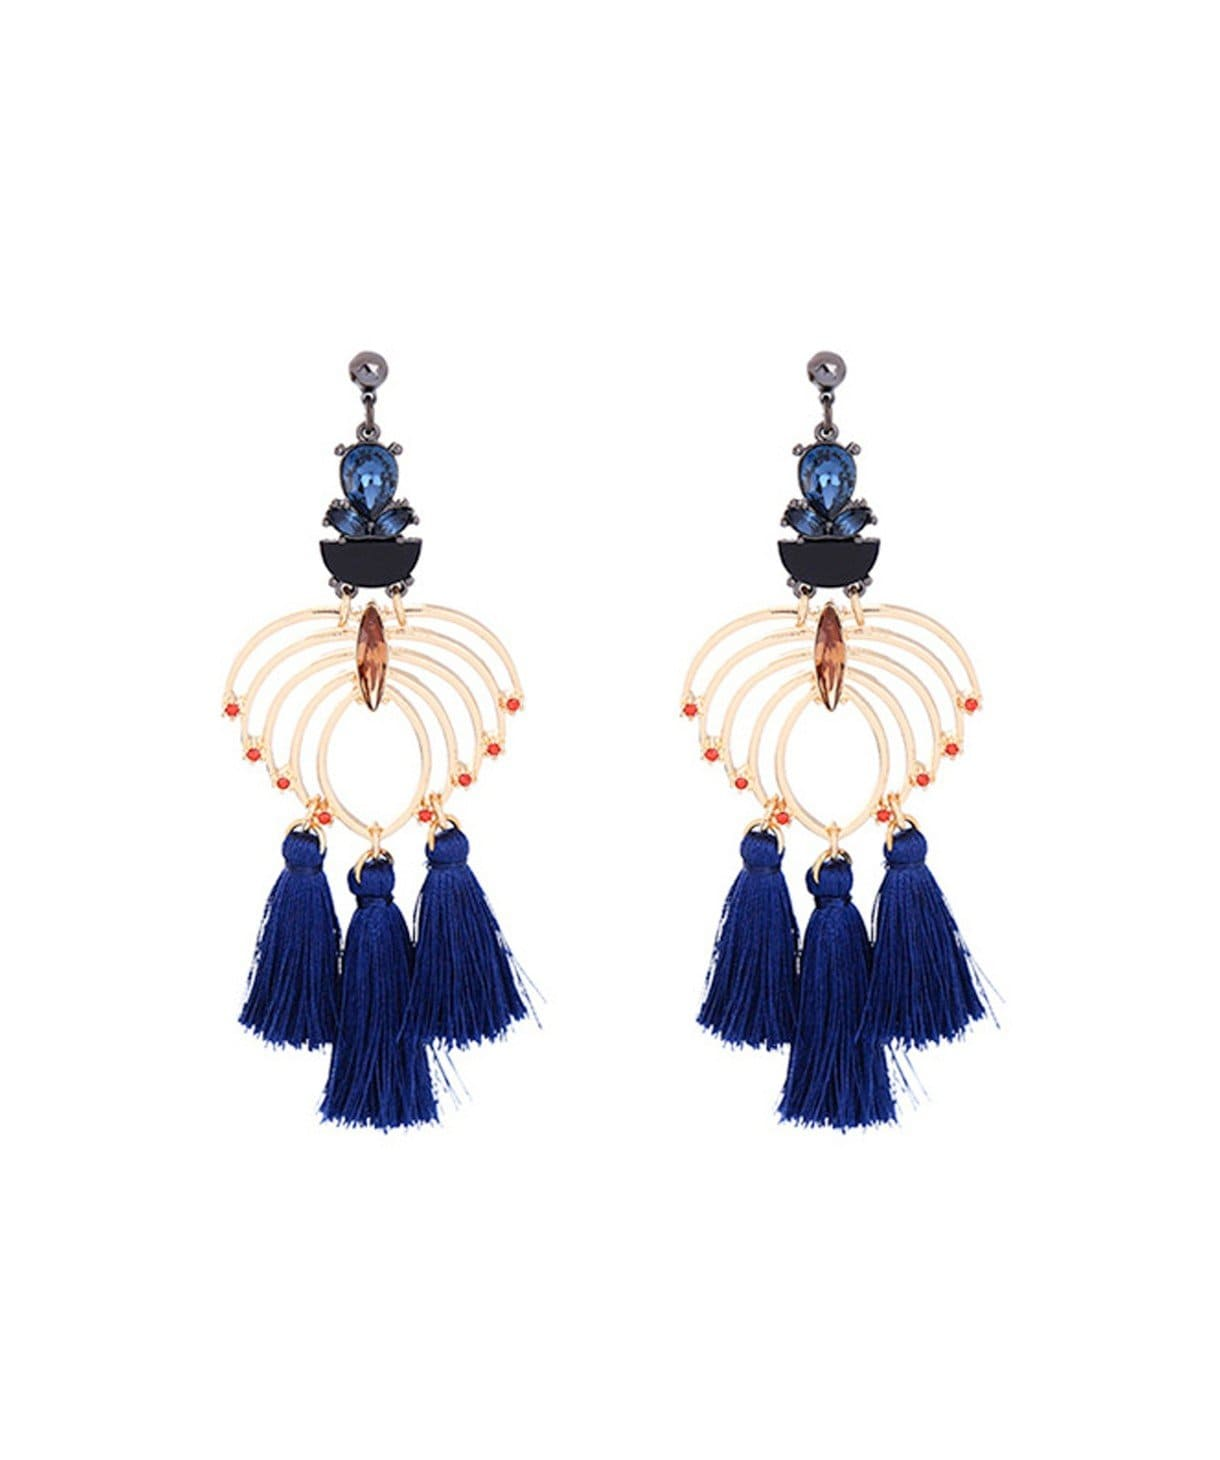 Fountain Tassel Earrings - Uptownie